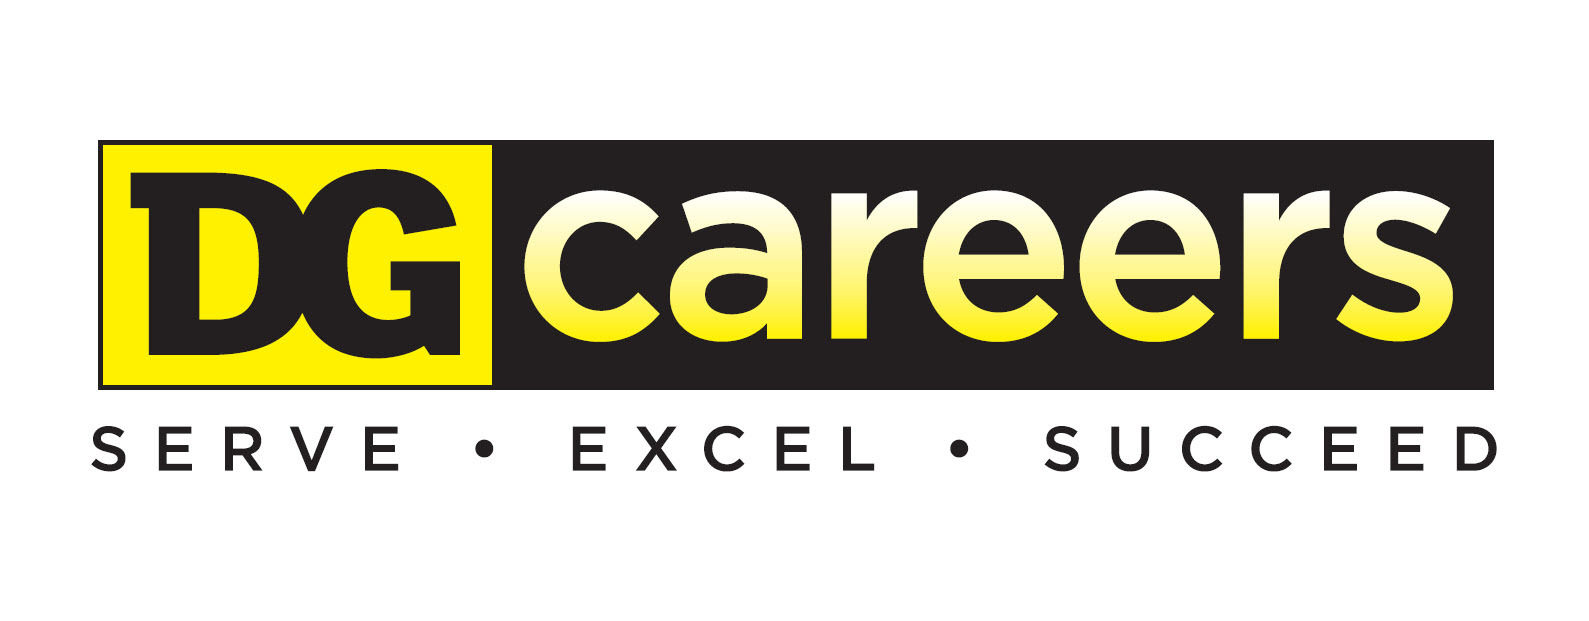 dollar general plans to create approximately new jobs in dollar general plans to create approximately 10 000 new jobs in 2017 business wire